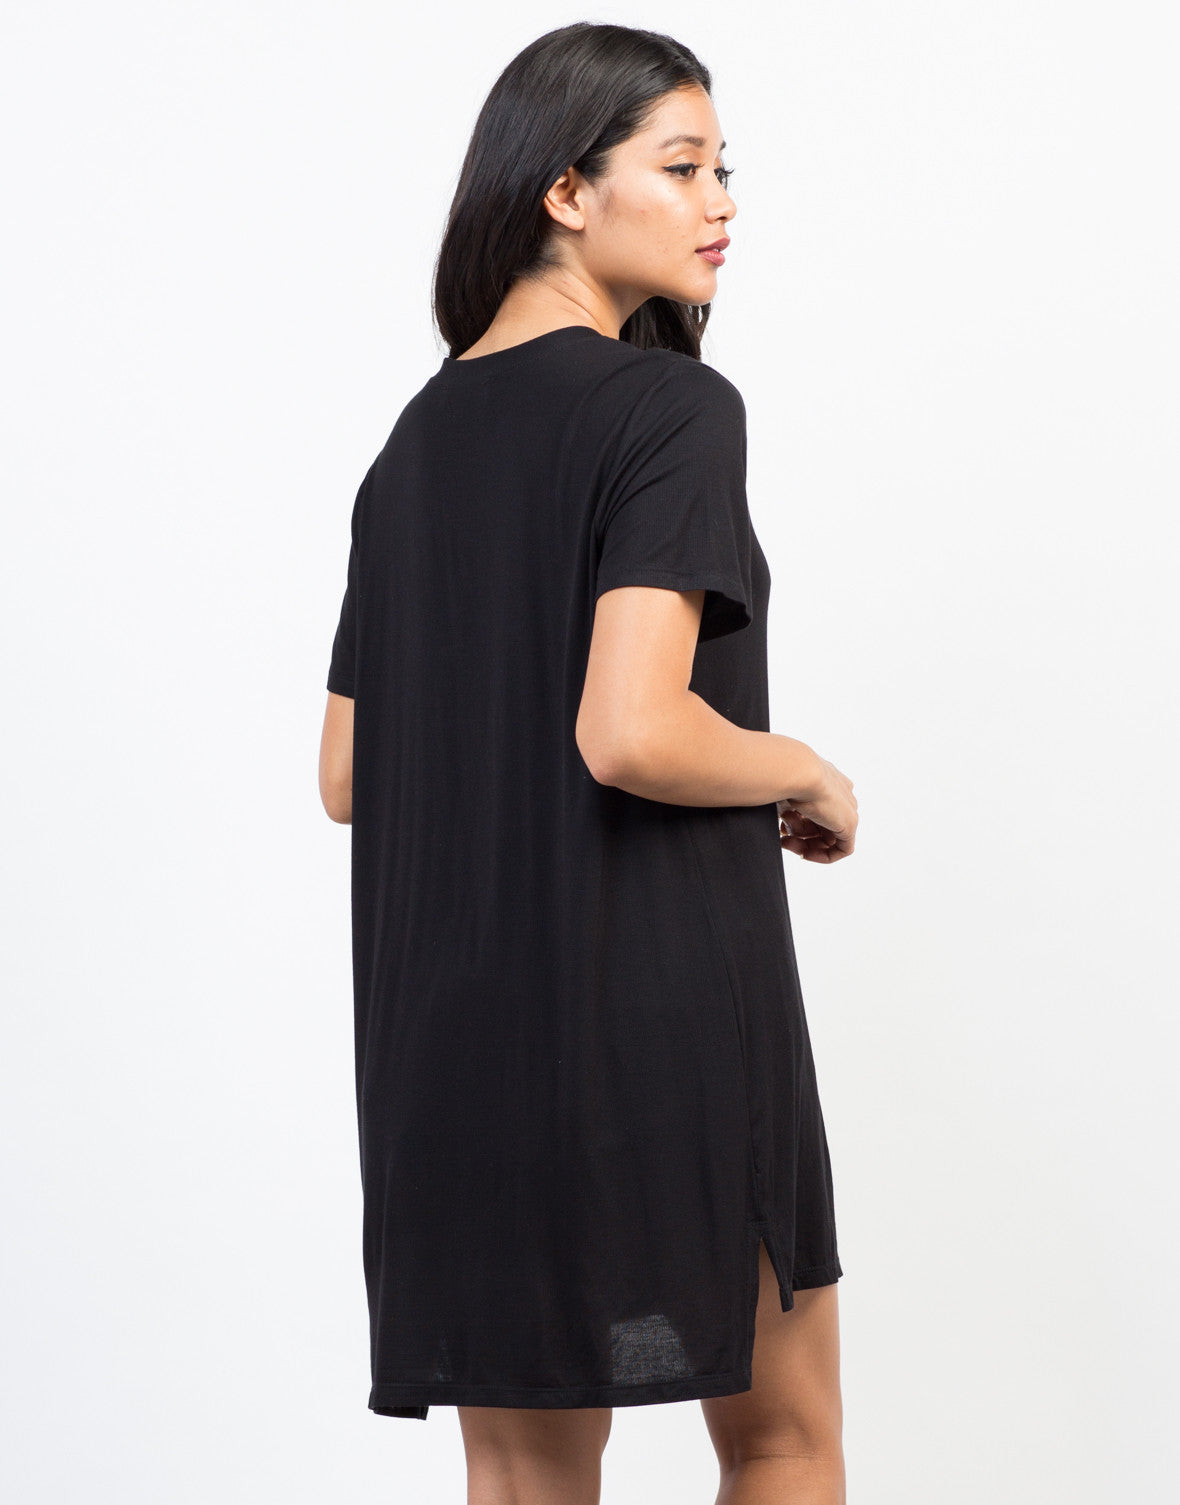 Back View of Oversized Pocket Tee Dress